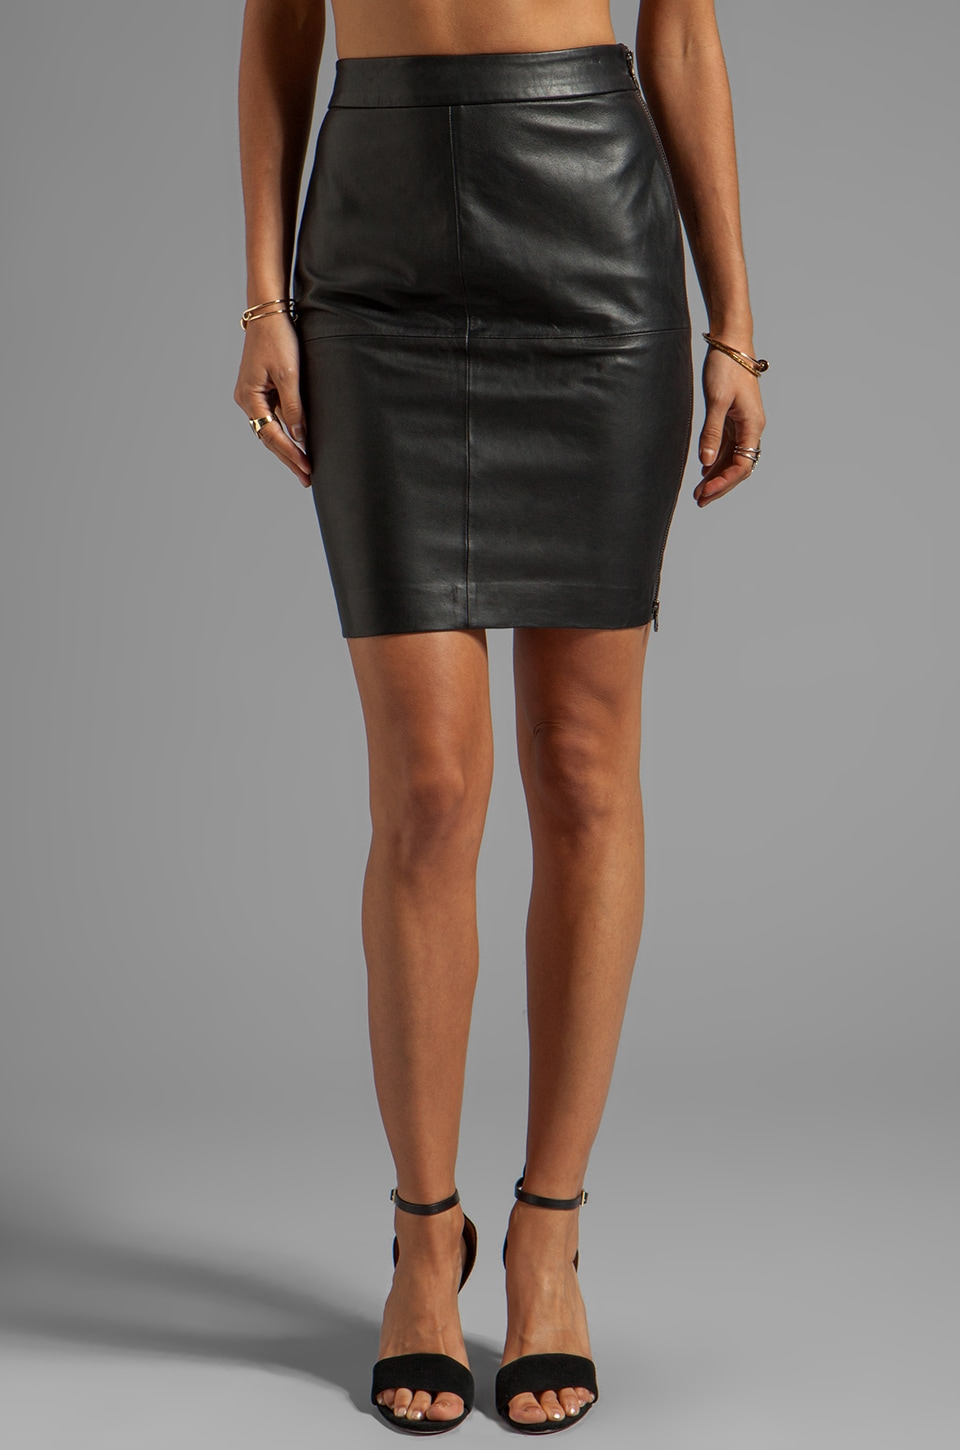 Trina Turk Soft Lamb Leather Sydney Skirt in Black